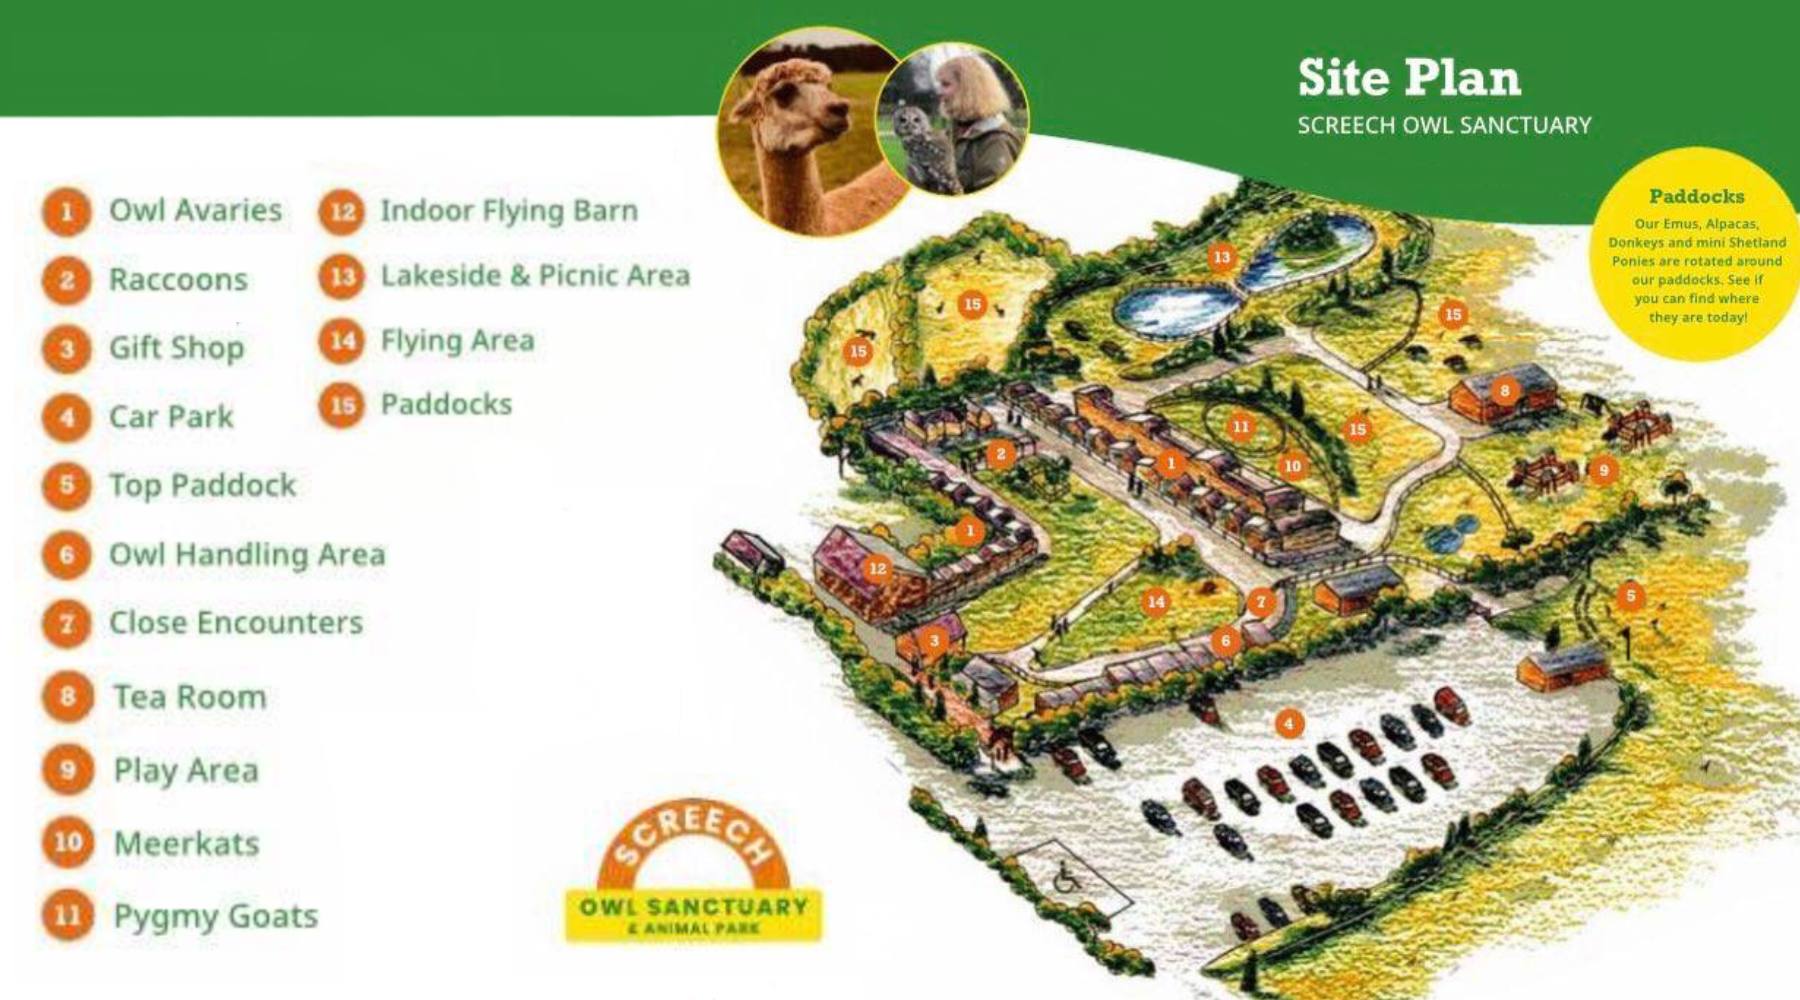 Site map for the Screech Owl Wildlife Park